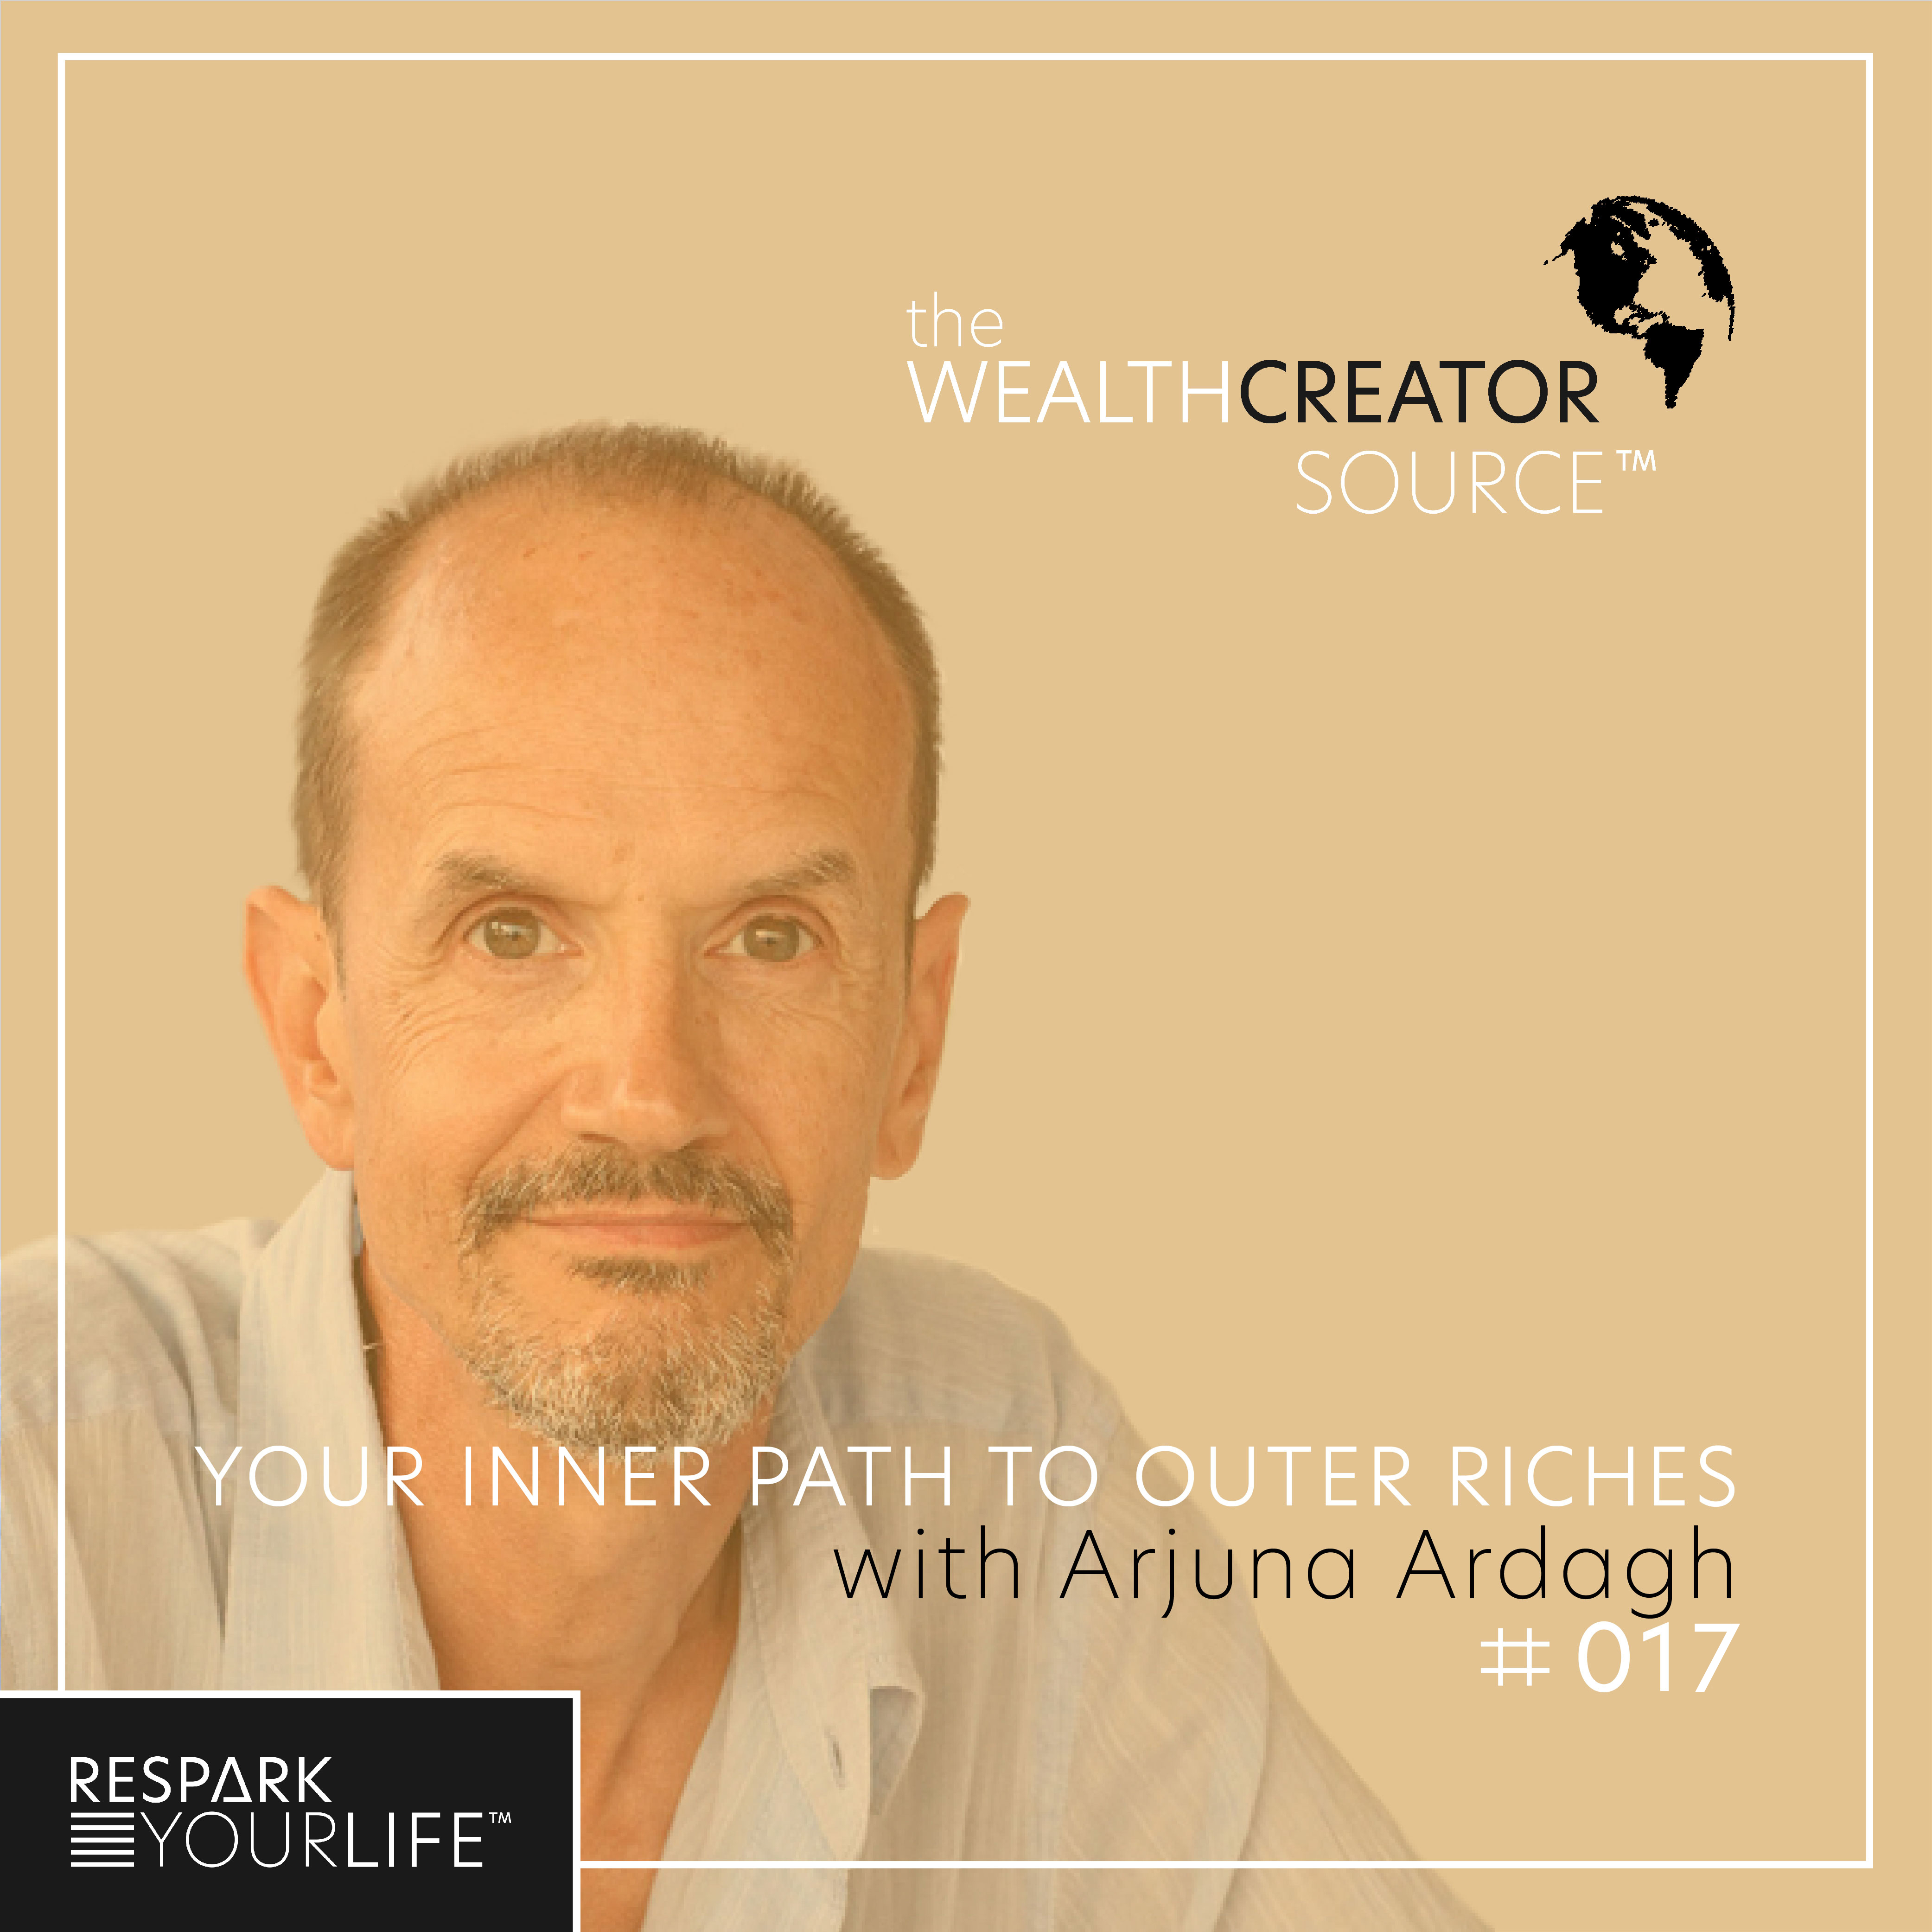 Your Inner Path to Outer Riches with Arjuna Ardagh